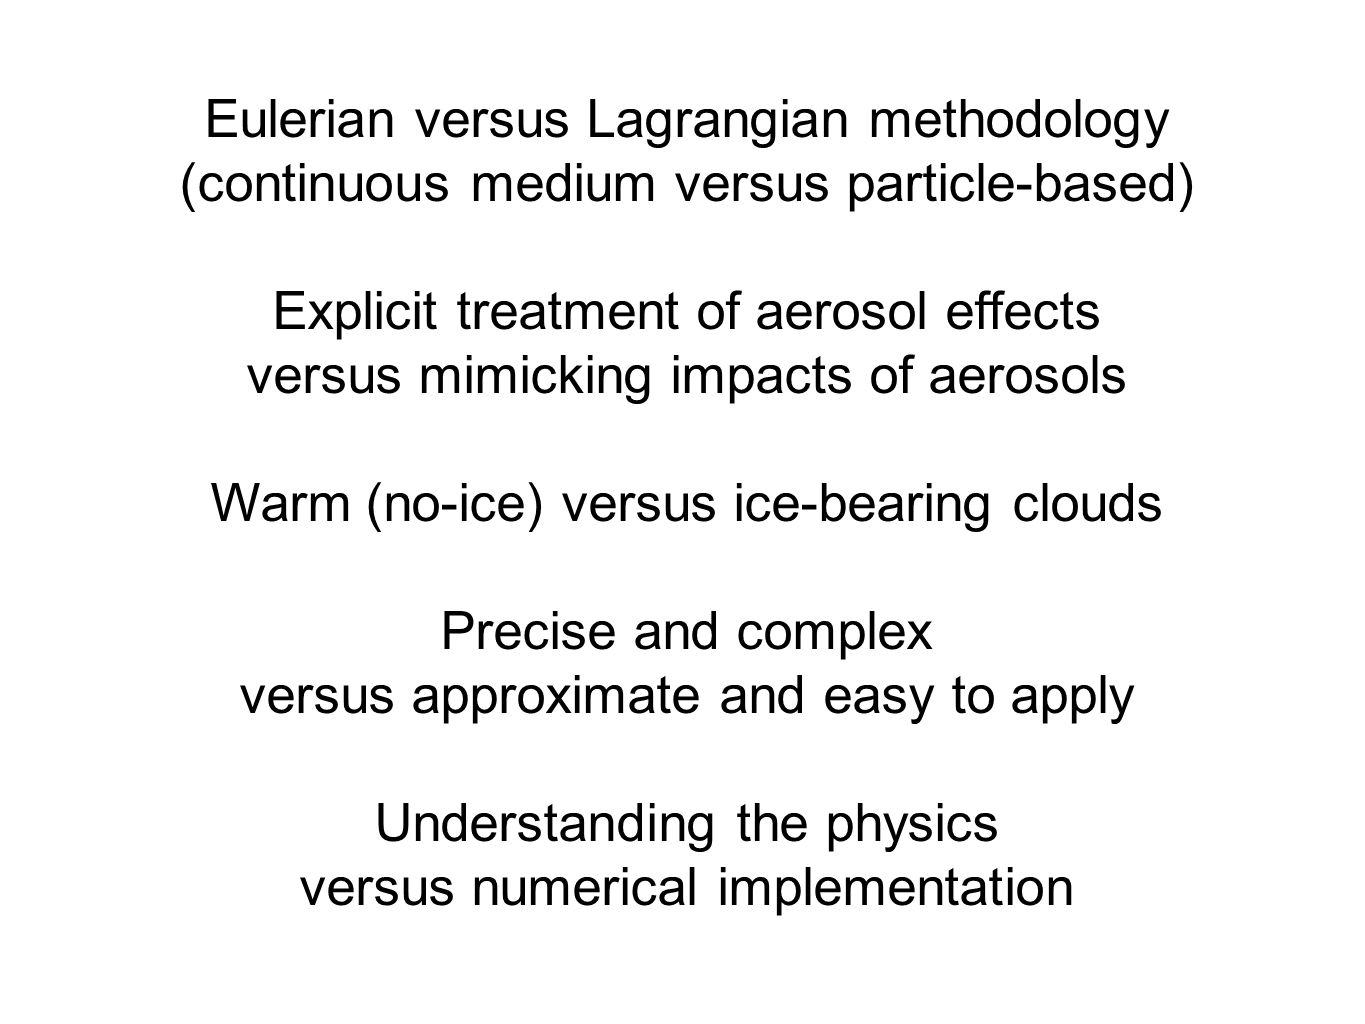 Eulerian dynamics, energy and water vapor transport: Lagrangian physics of super-particles a single super-particle represents a number of the same airborne particles (aerosol, droplet, ice crystal, etc.) with given attributes Coupling m id – mass of the super-particle M id – concentration of super- particles ΔV – volume of the gridbox Andrejczuk et al.